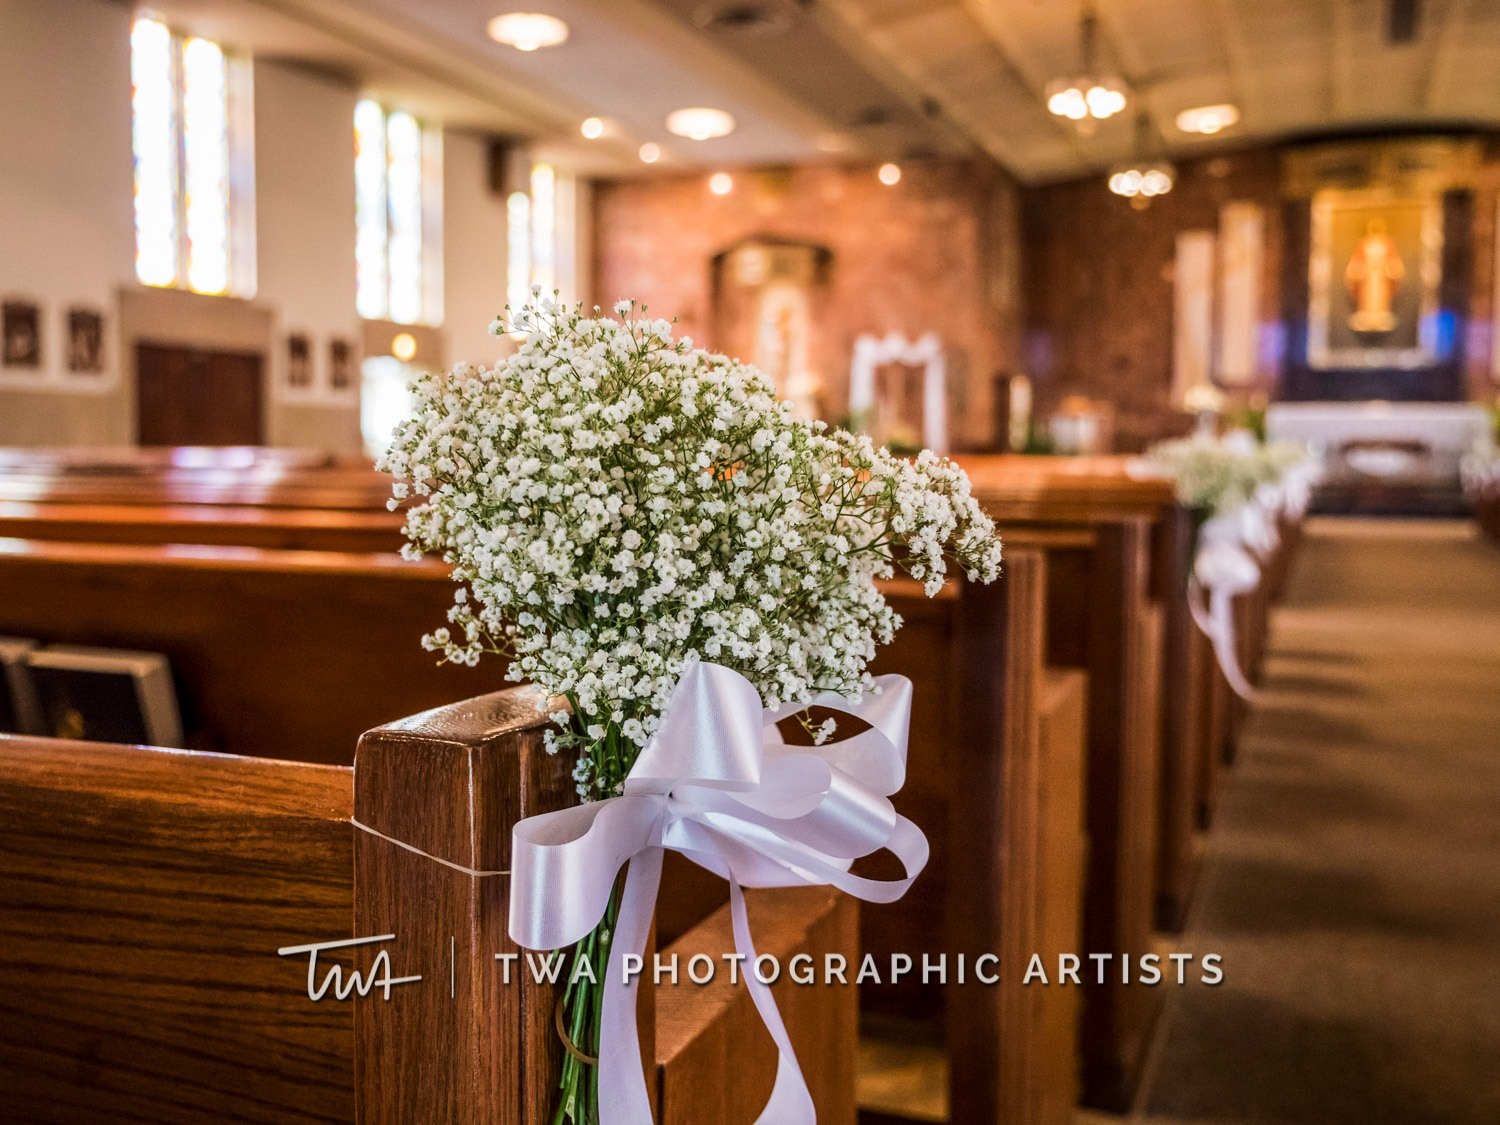 Chicago-Wedding-Photographer-TWA-Photographic-Artists-Ravisloe-CC_Steele_Zenere_JM_MP-0709